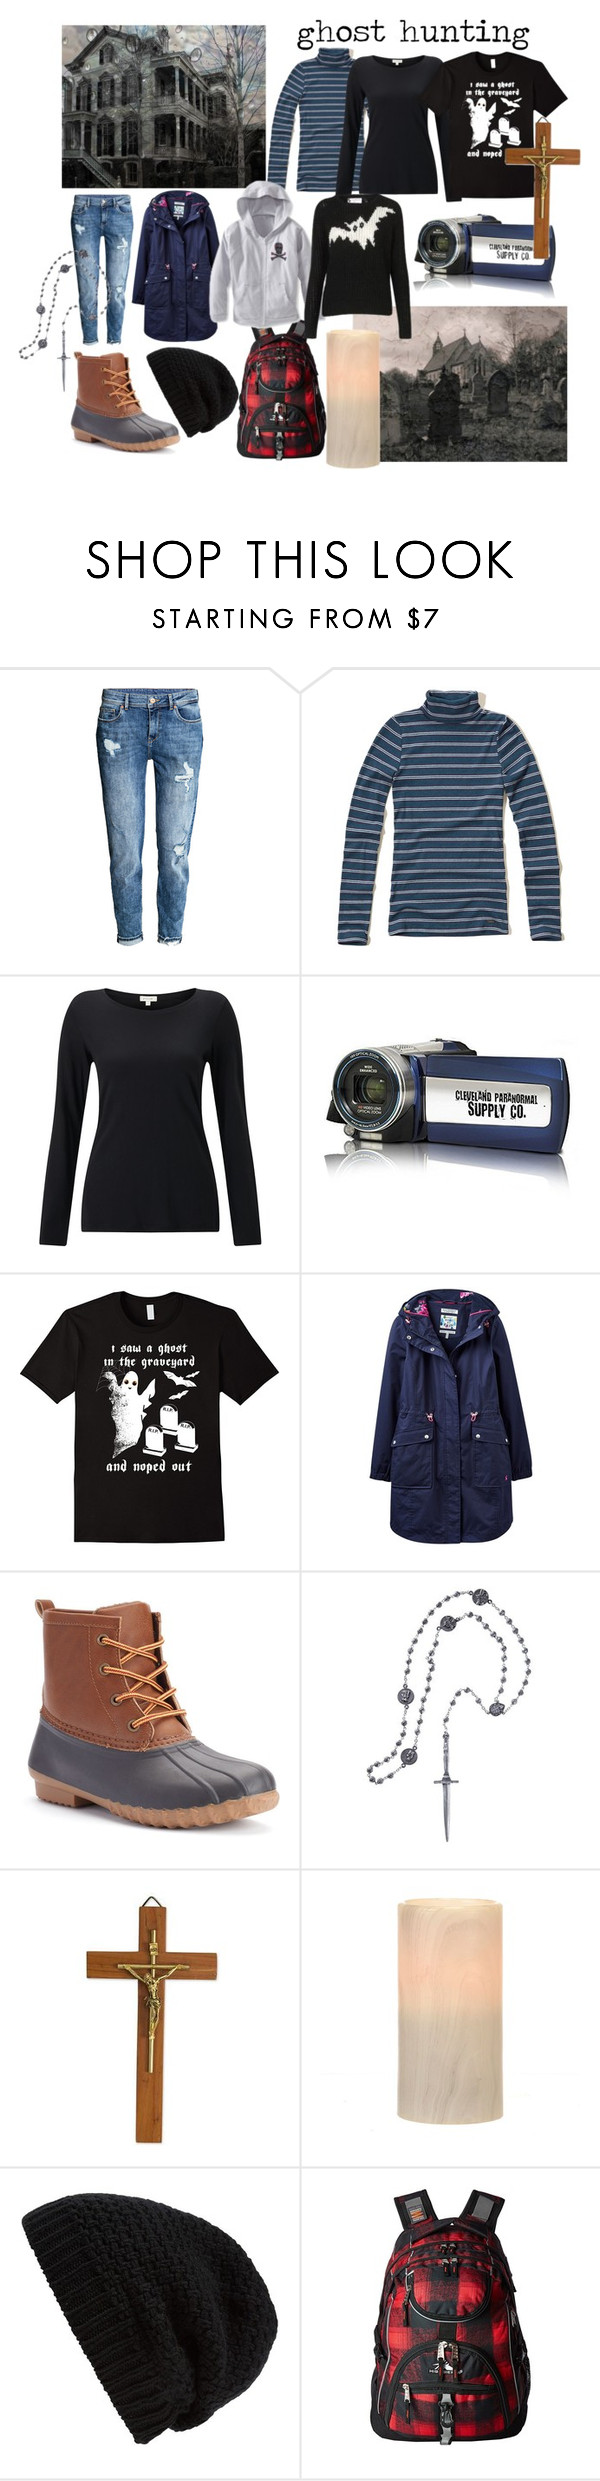 """Ghost Hunting Capsule Wardrobe"" by wheredidyougetthat ❤ liked on Polyvore featuring H&M, Hollister Co., Jigsaw, Joules, UNIONBAY, Pamela Love, NOVICA, Rick Owens, High Sierra and haunted"